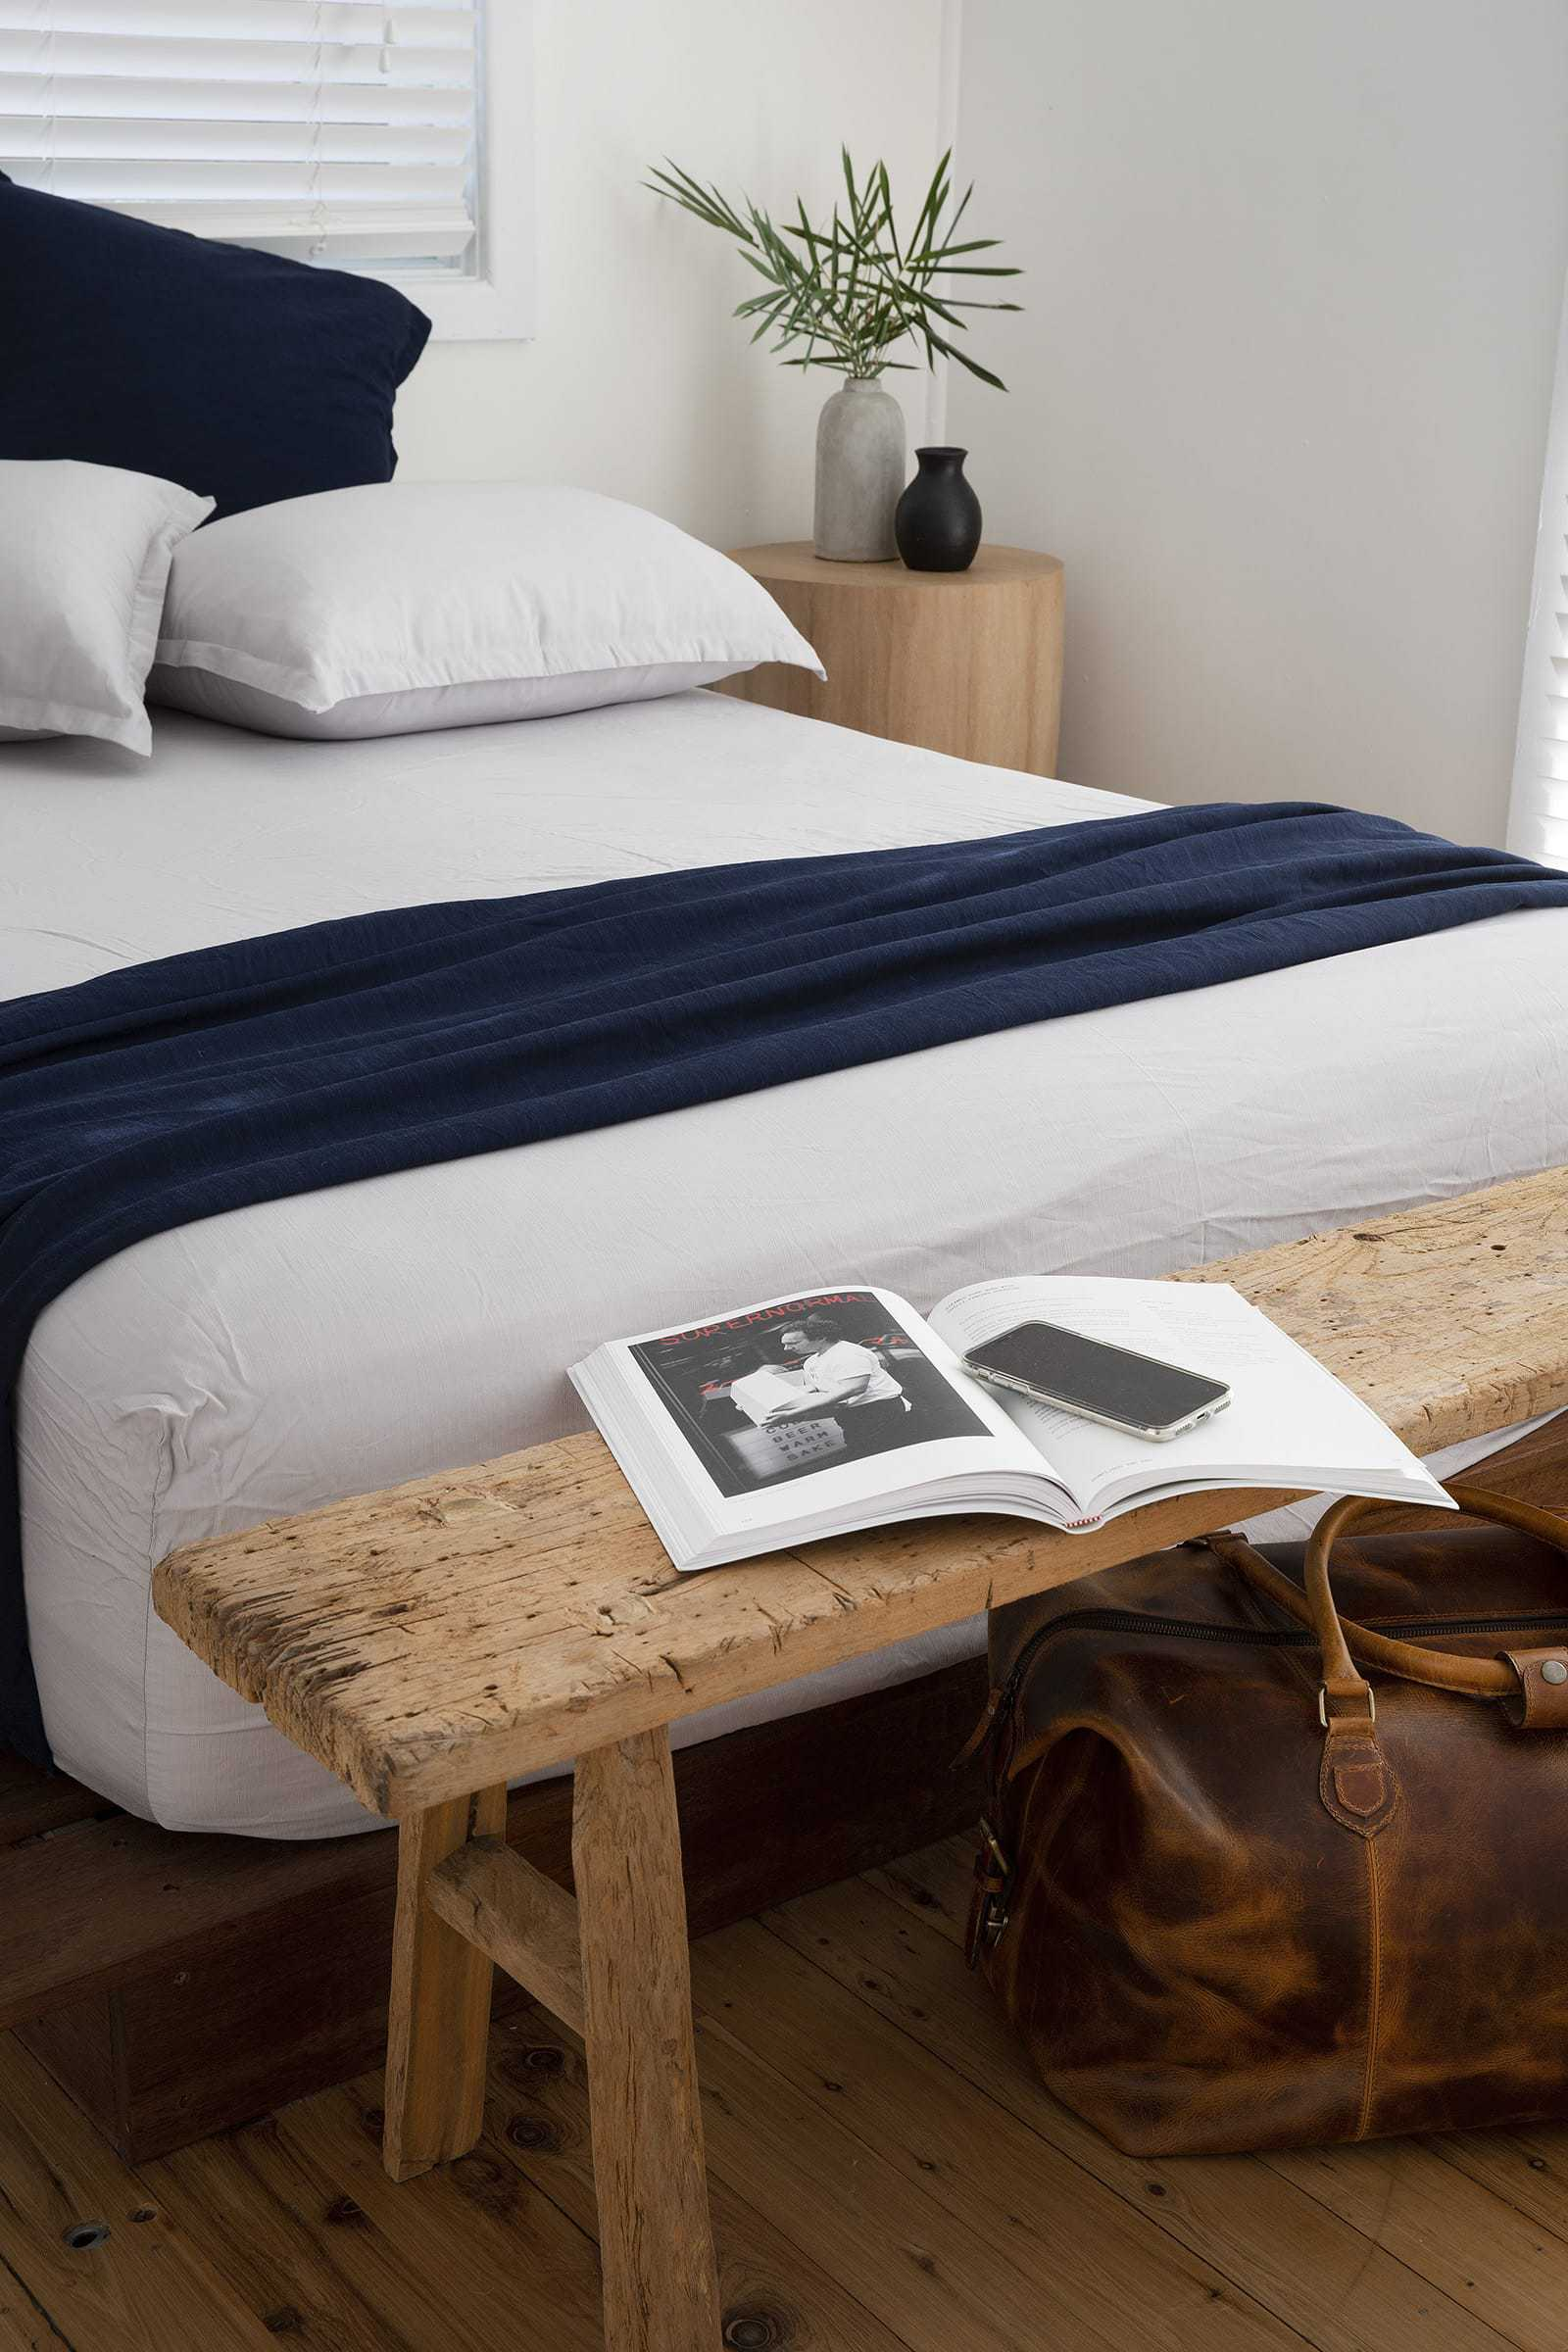 navy and white loom living bamboo bedding in bedroom with timber floors and bench seat at end of bed